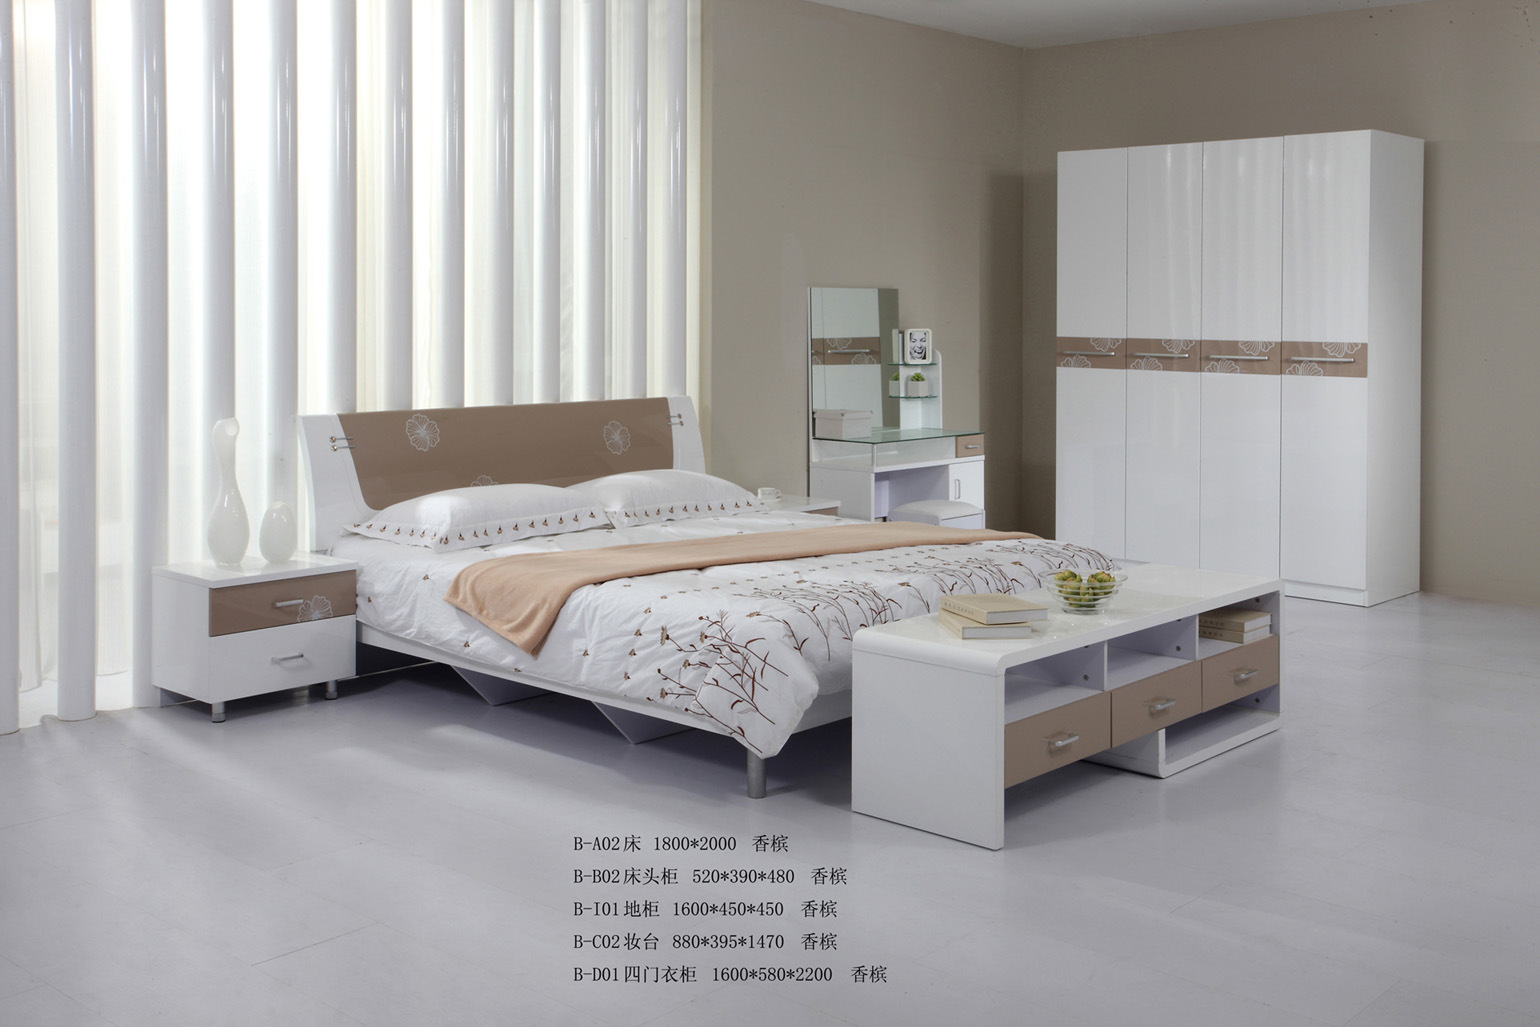 White bedrooms furniture interior decorating accessories for White bedroom furniture